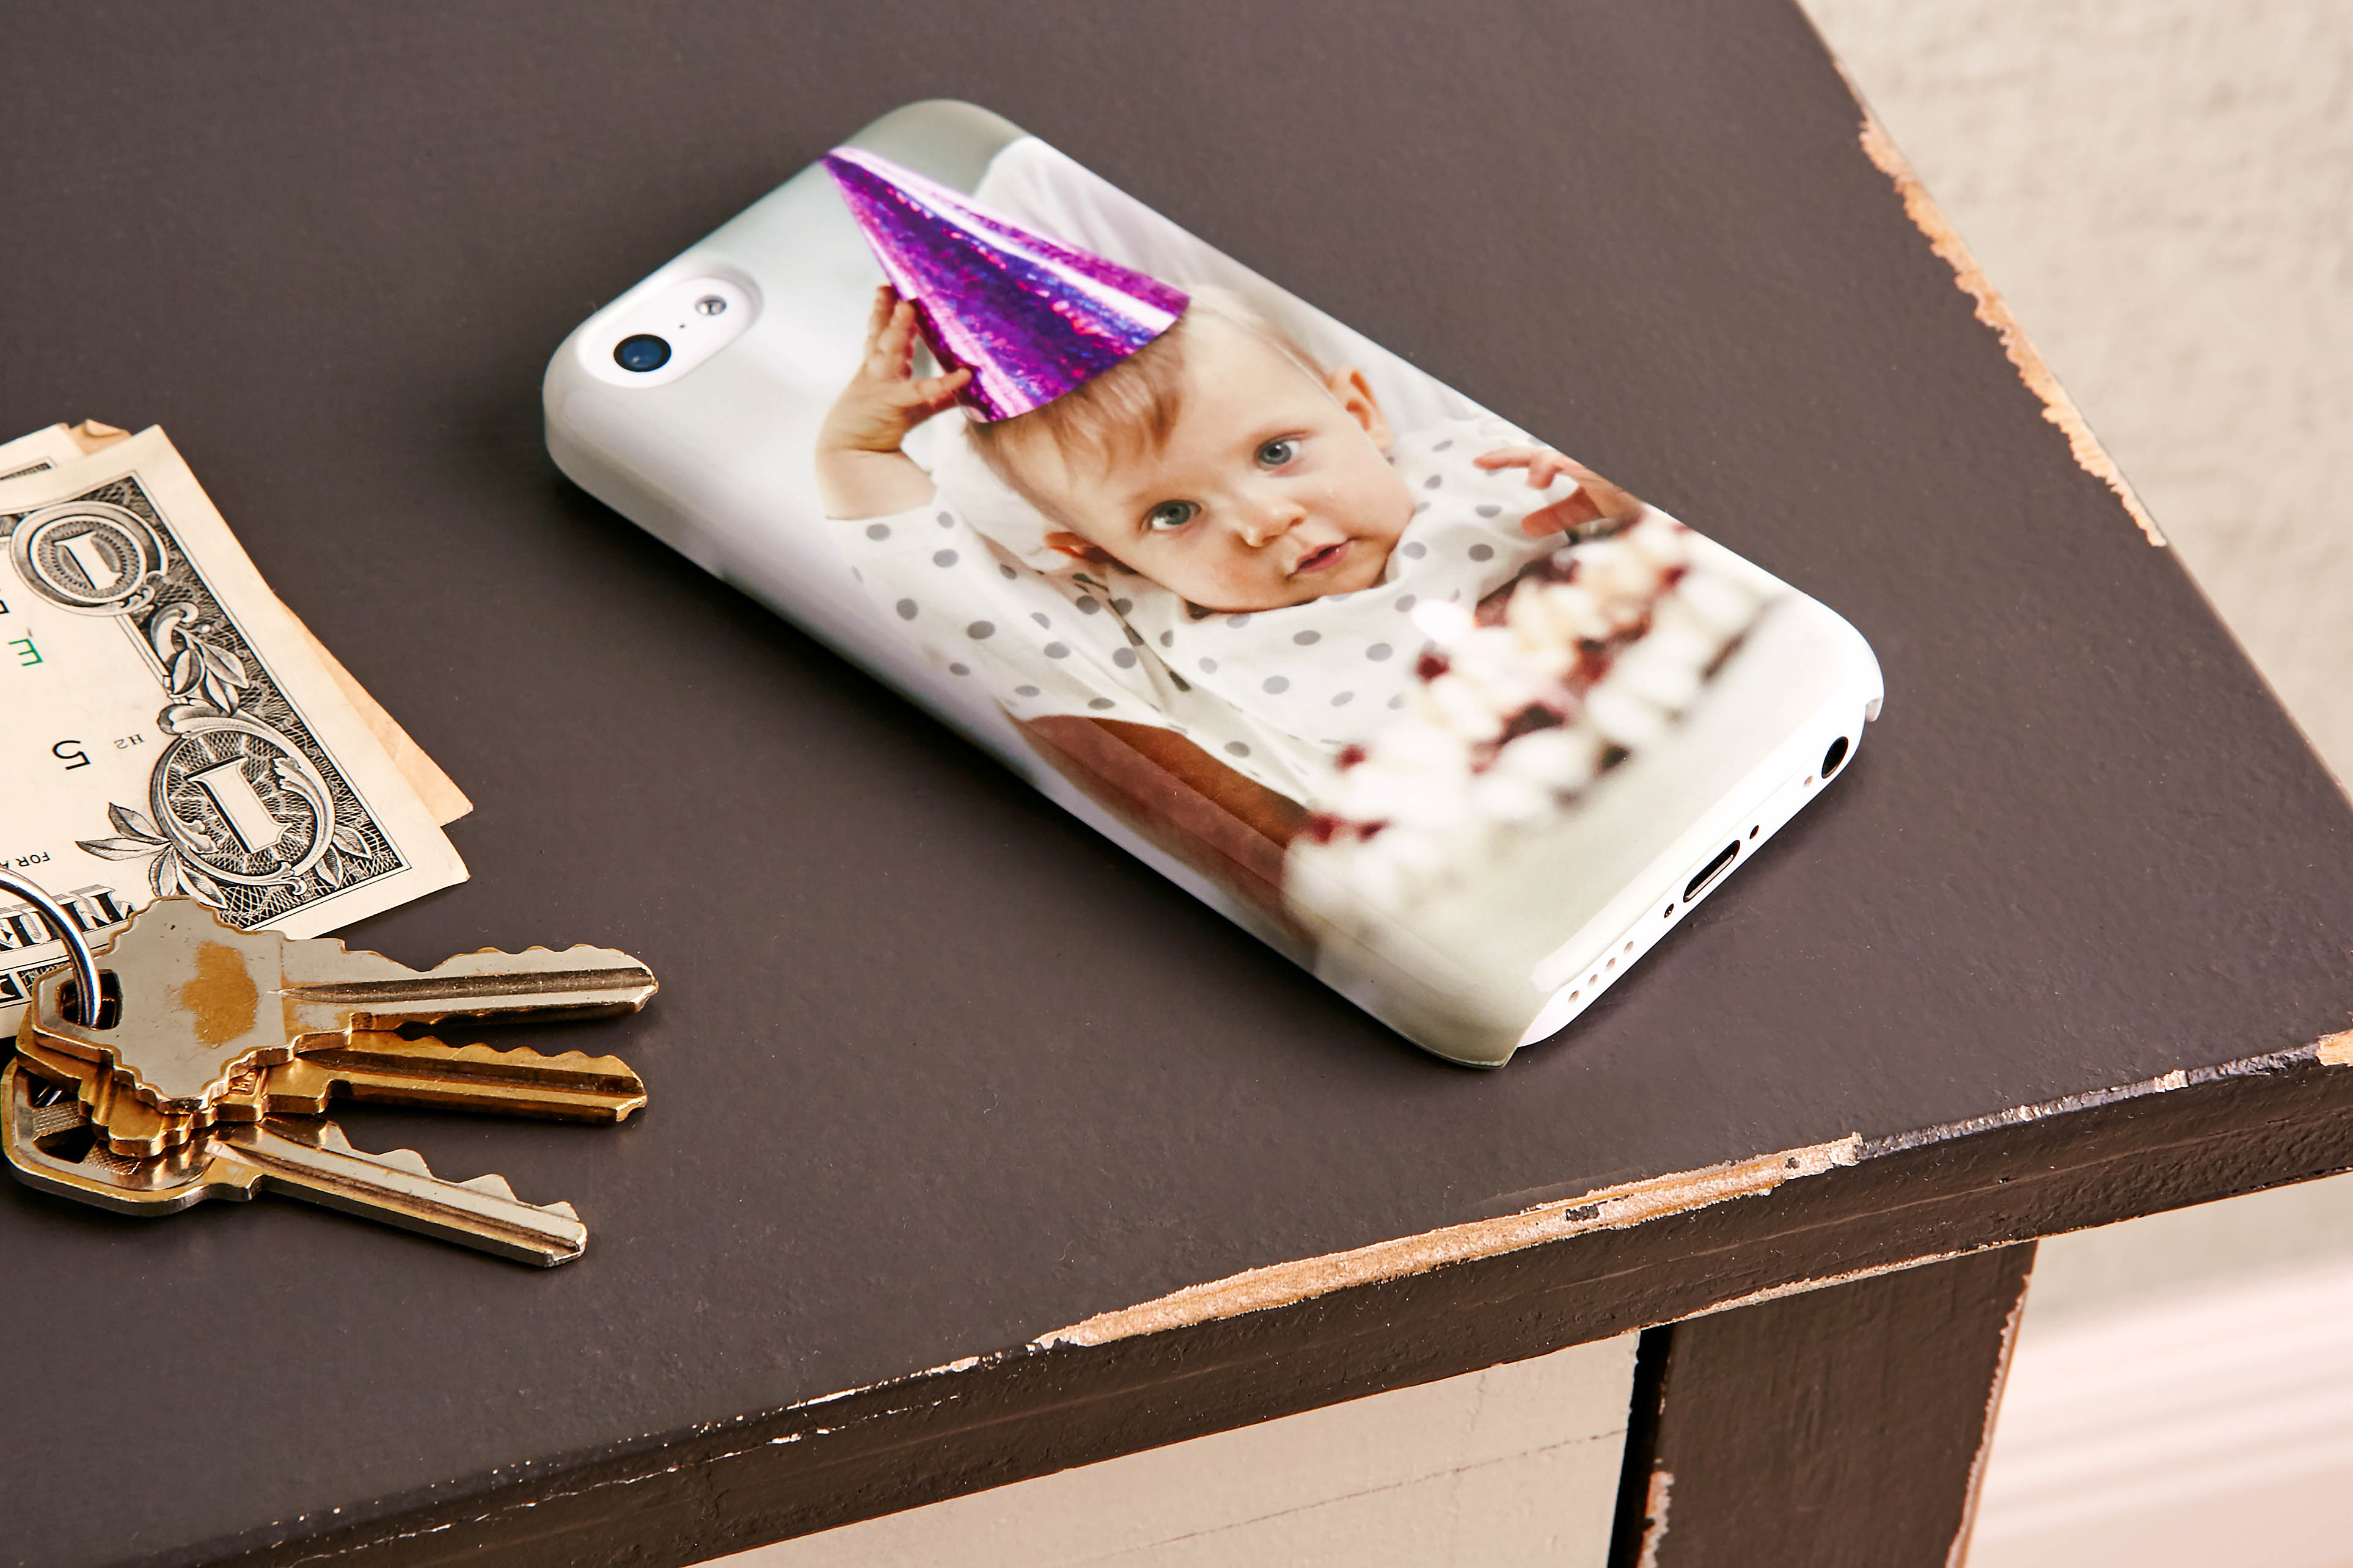 Protect your iPhone or Galaxy phone with our new cases